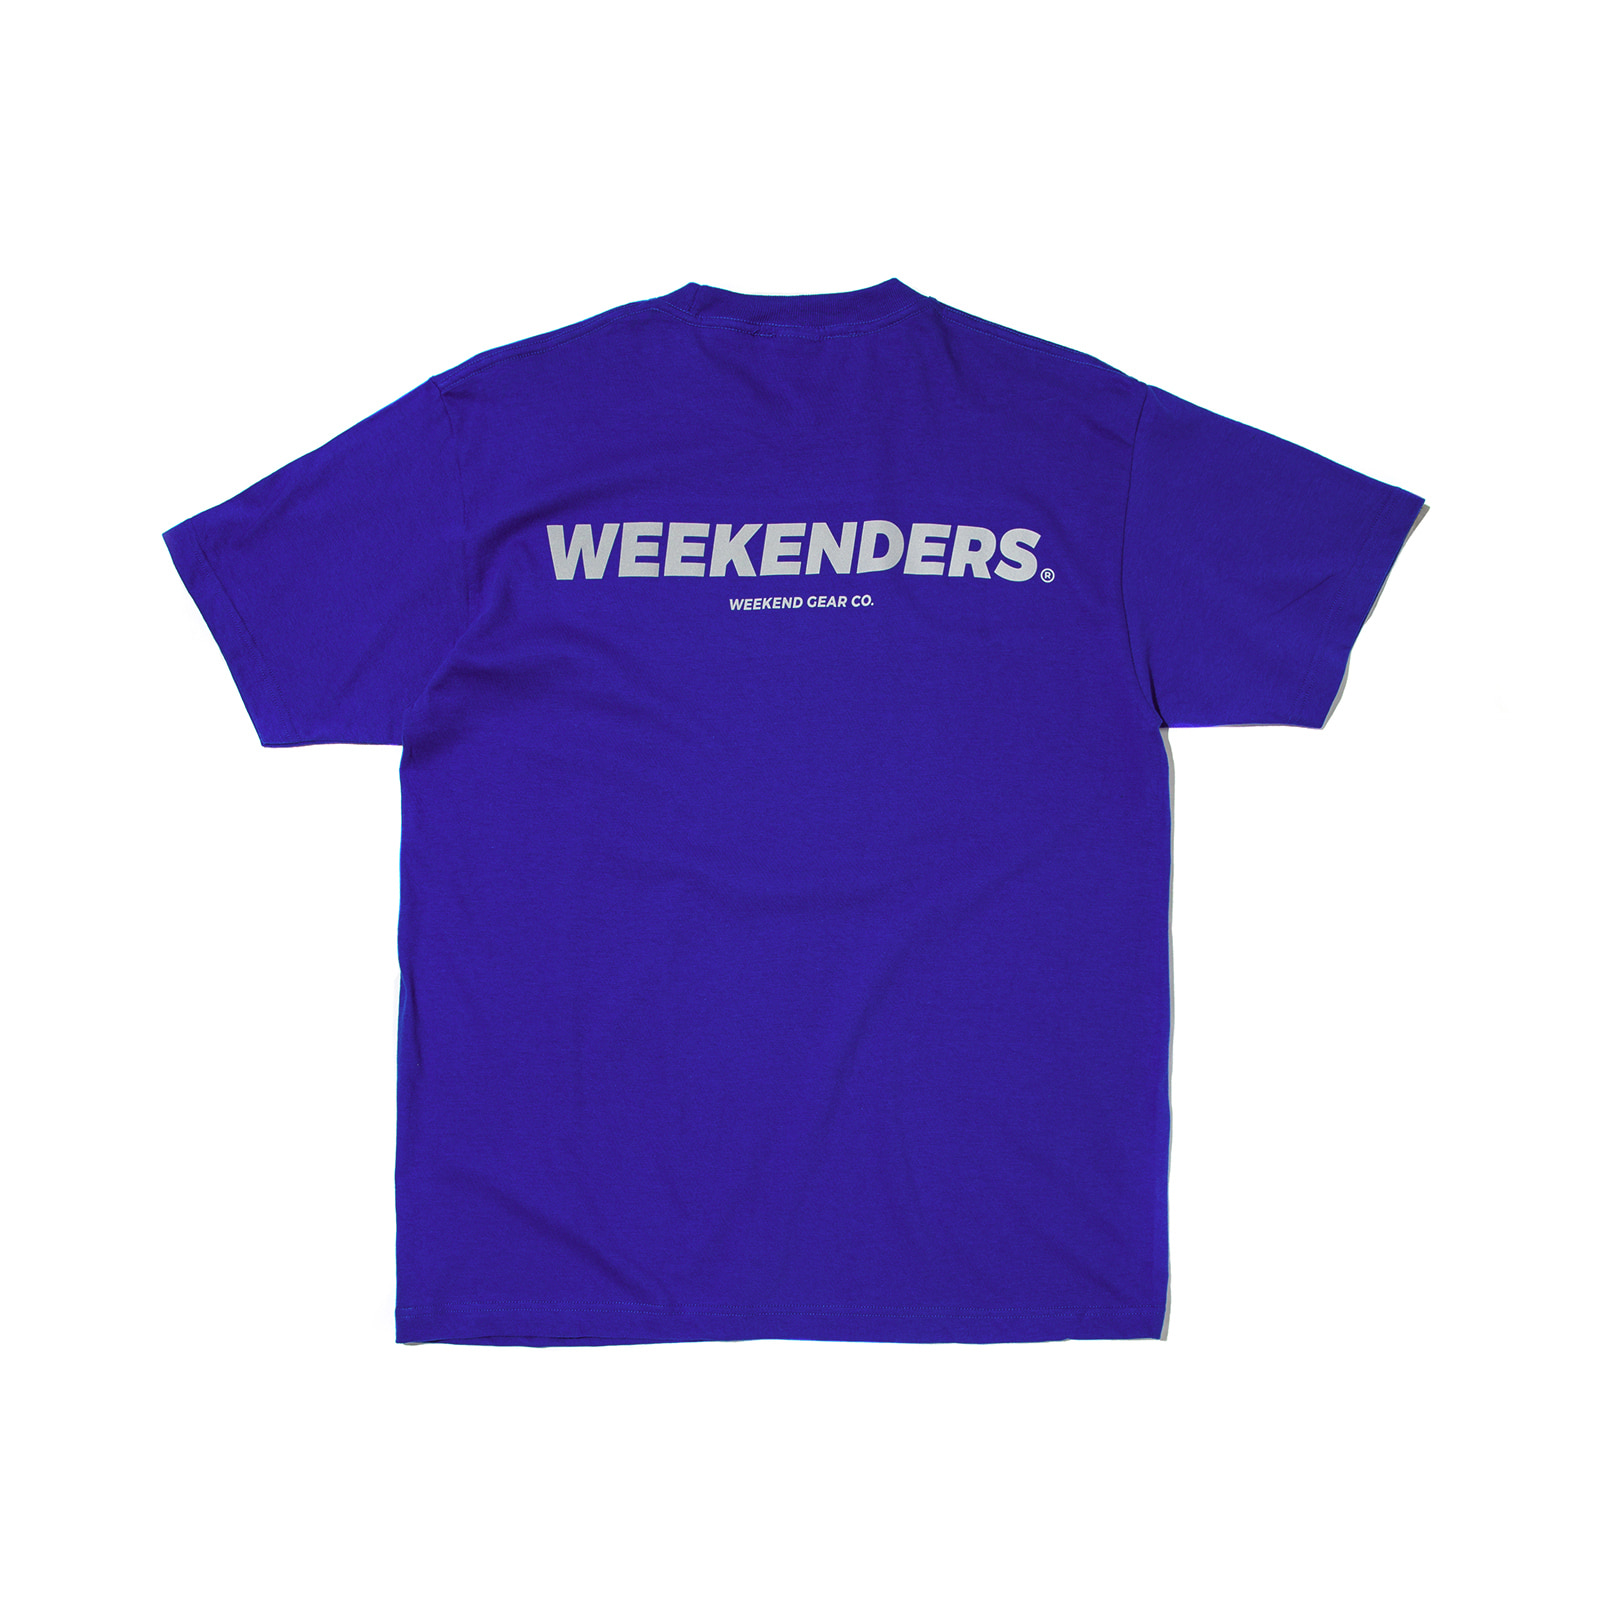 WKNDRS TEE (MIDNIGHT BLUE)